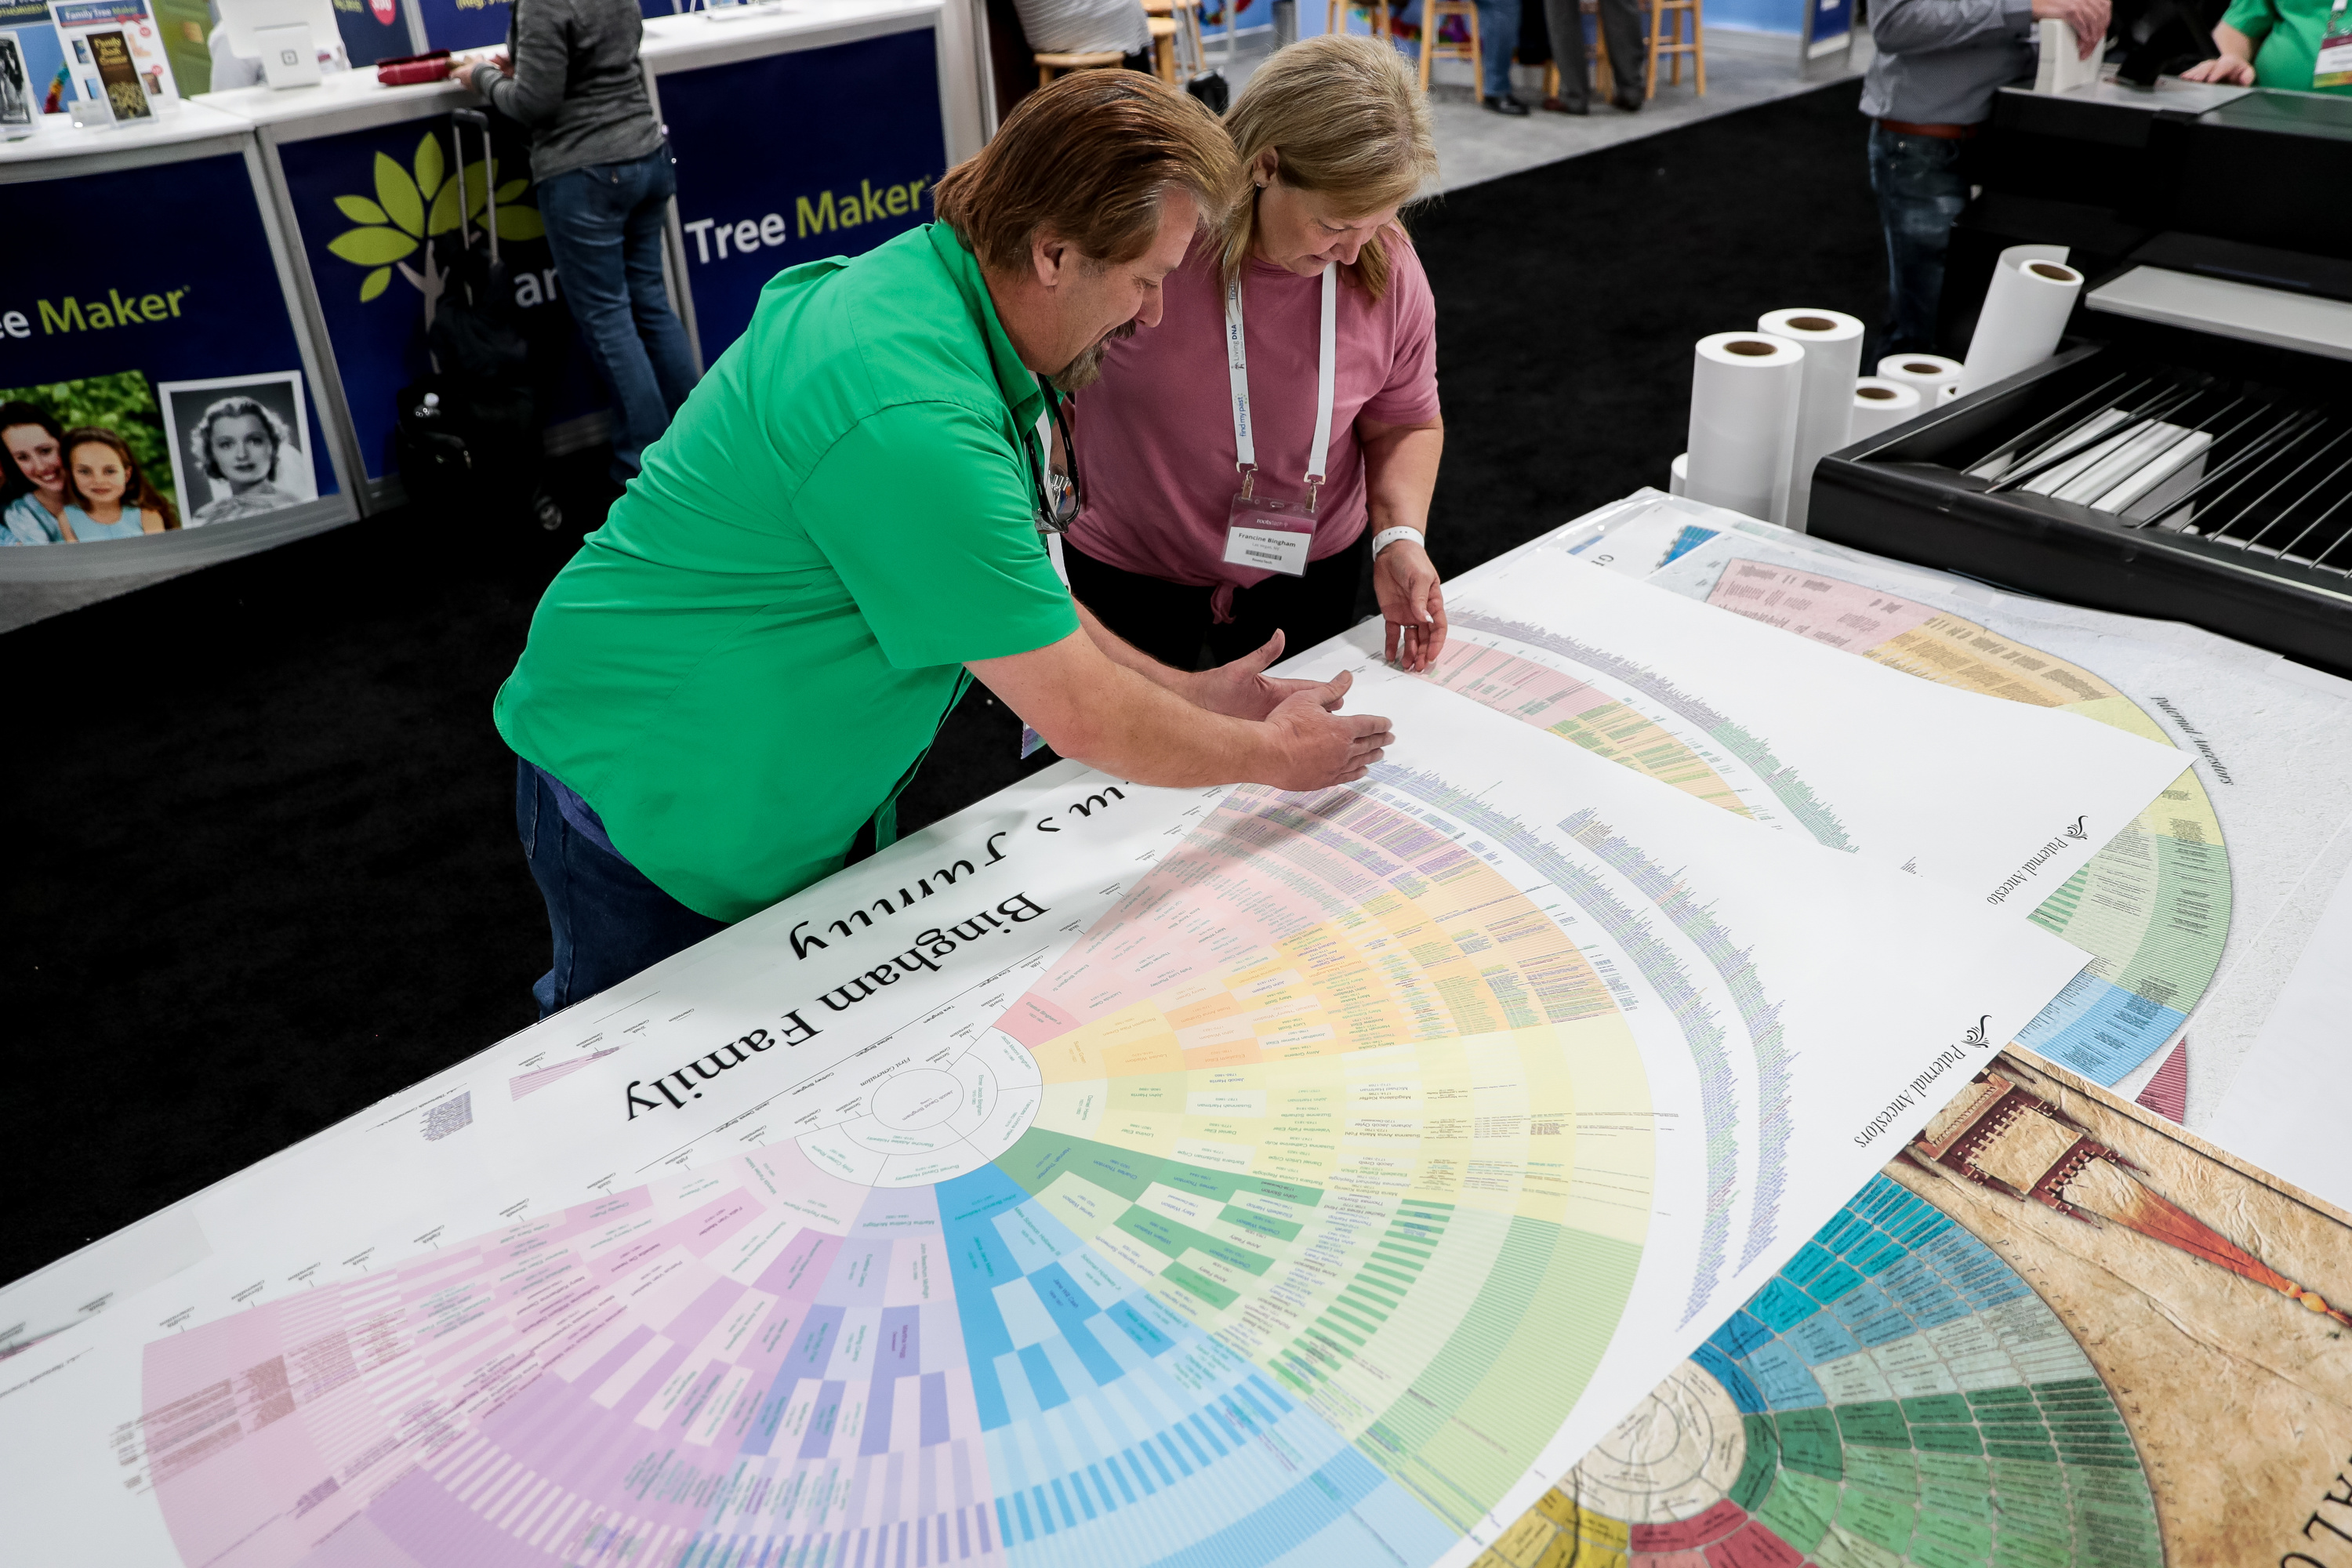 Kevin Cook, of Genealogy Wall Charts, talks to Francine Bingham about her chart at the RootsTech conference at the Salt Palace in Salt Lake City on Friday, March 1, 2019.